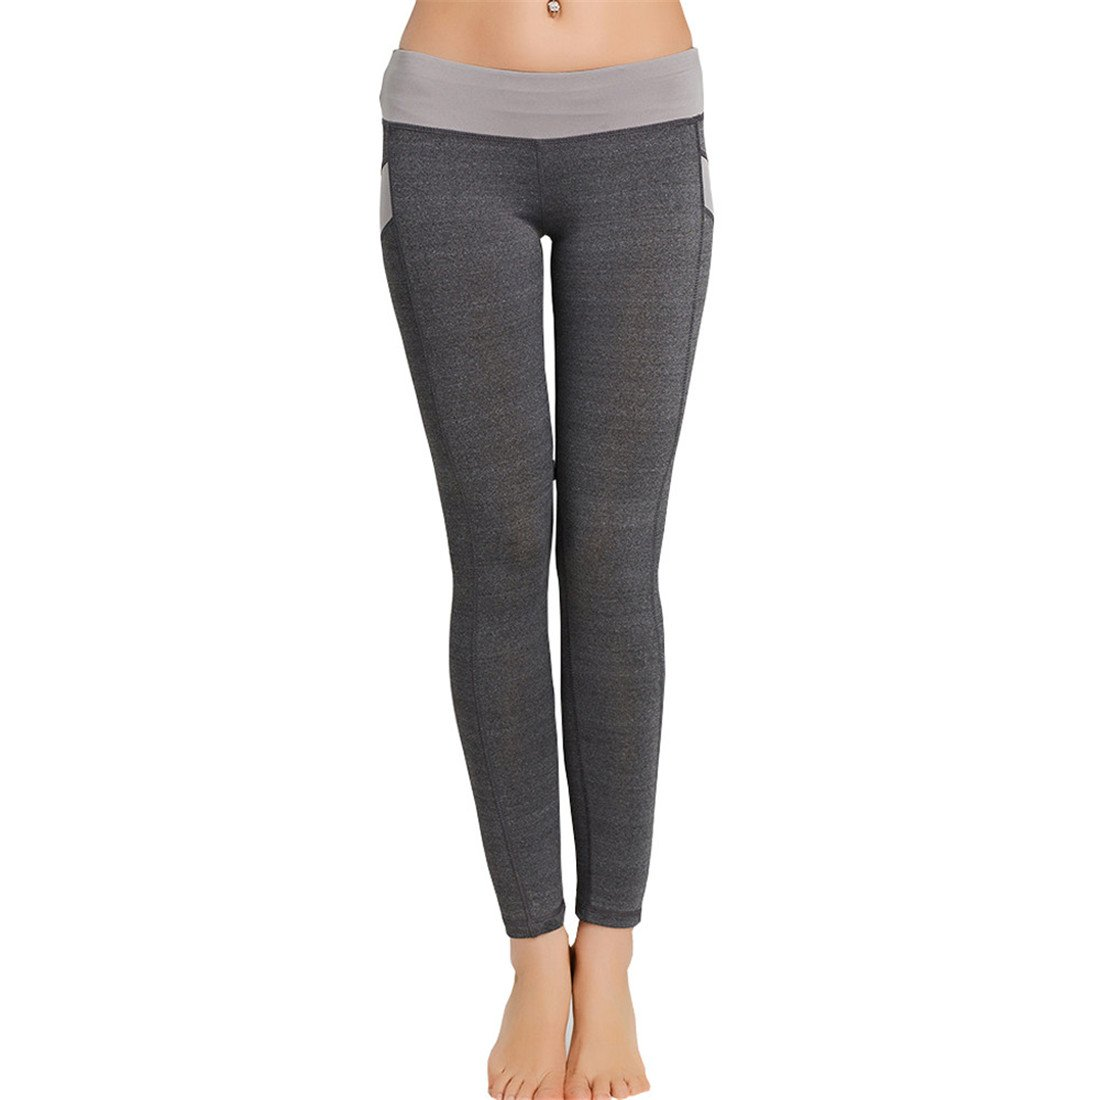 81cc855010674 Womens Yoga Pants,YKA,Girl Patchwork Skinny Push Up Sport Casual Pants  Trousers Leggings For Ladies (M, Gray): Amazon.co.uk: Clothing